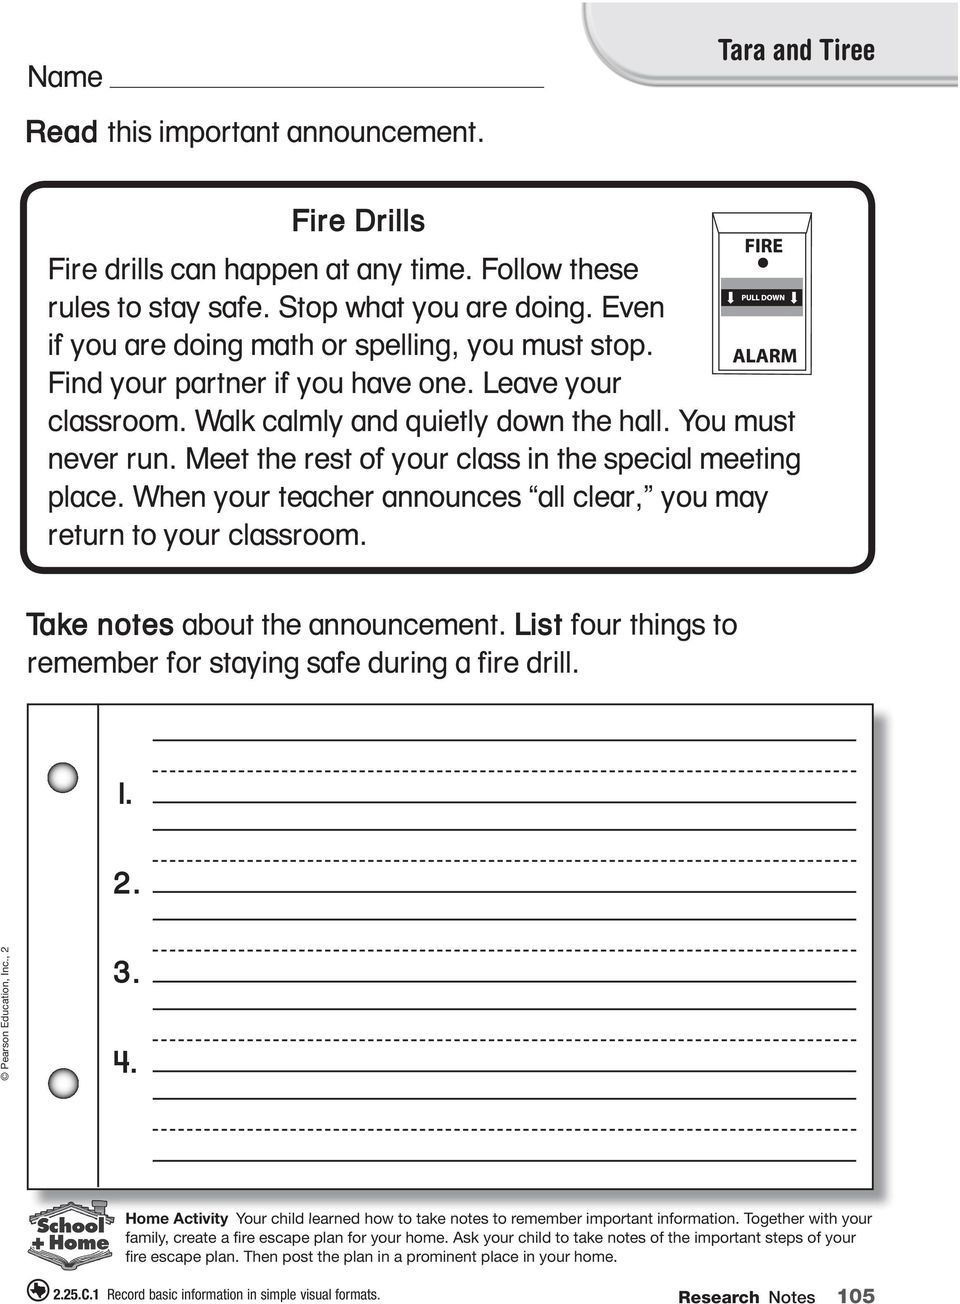 When your teacher announces all clear, you may return to your classroom. Take notes about the announcement. List four things to remember for staying safe during a fire drill. 1. 2. 3. 4.